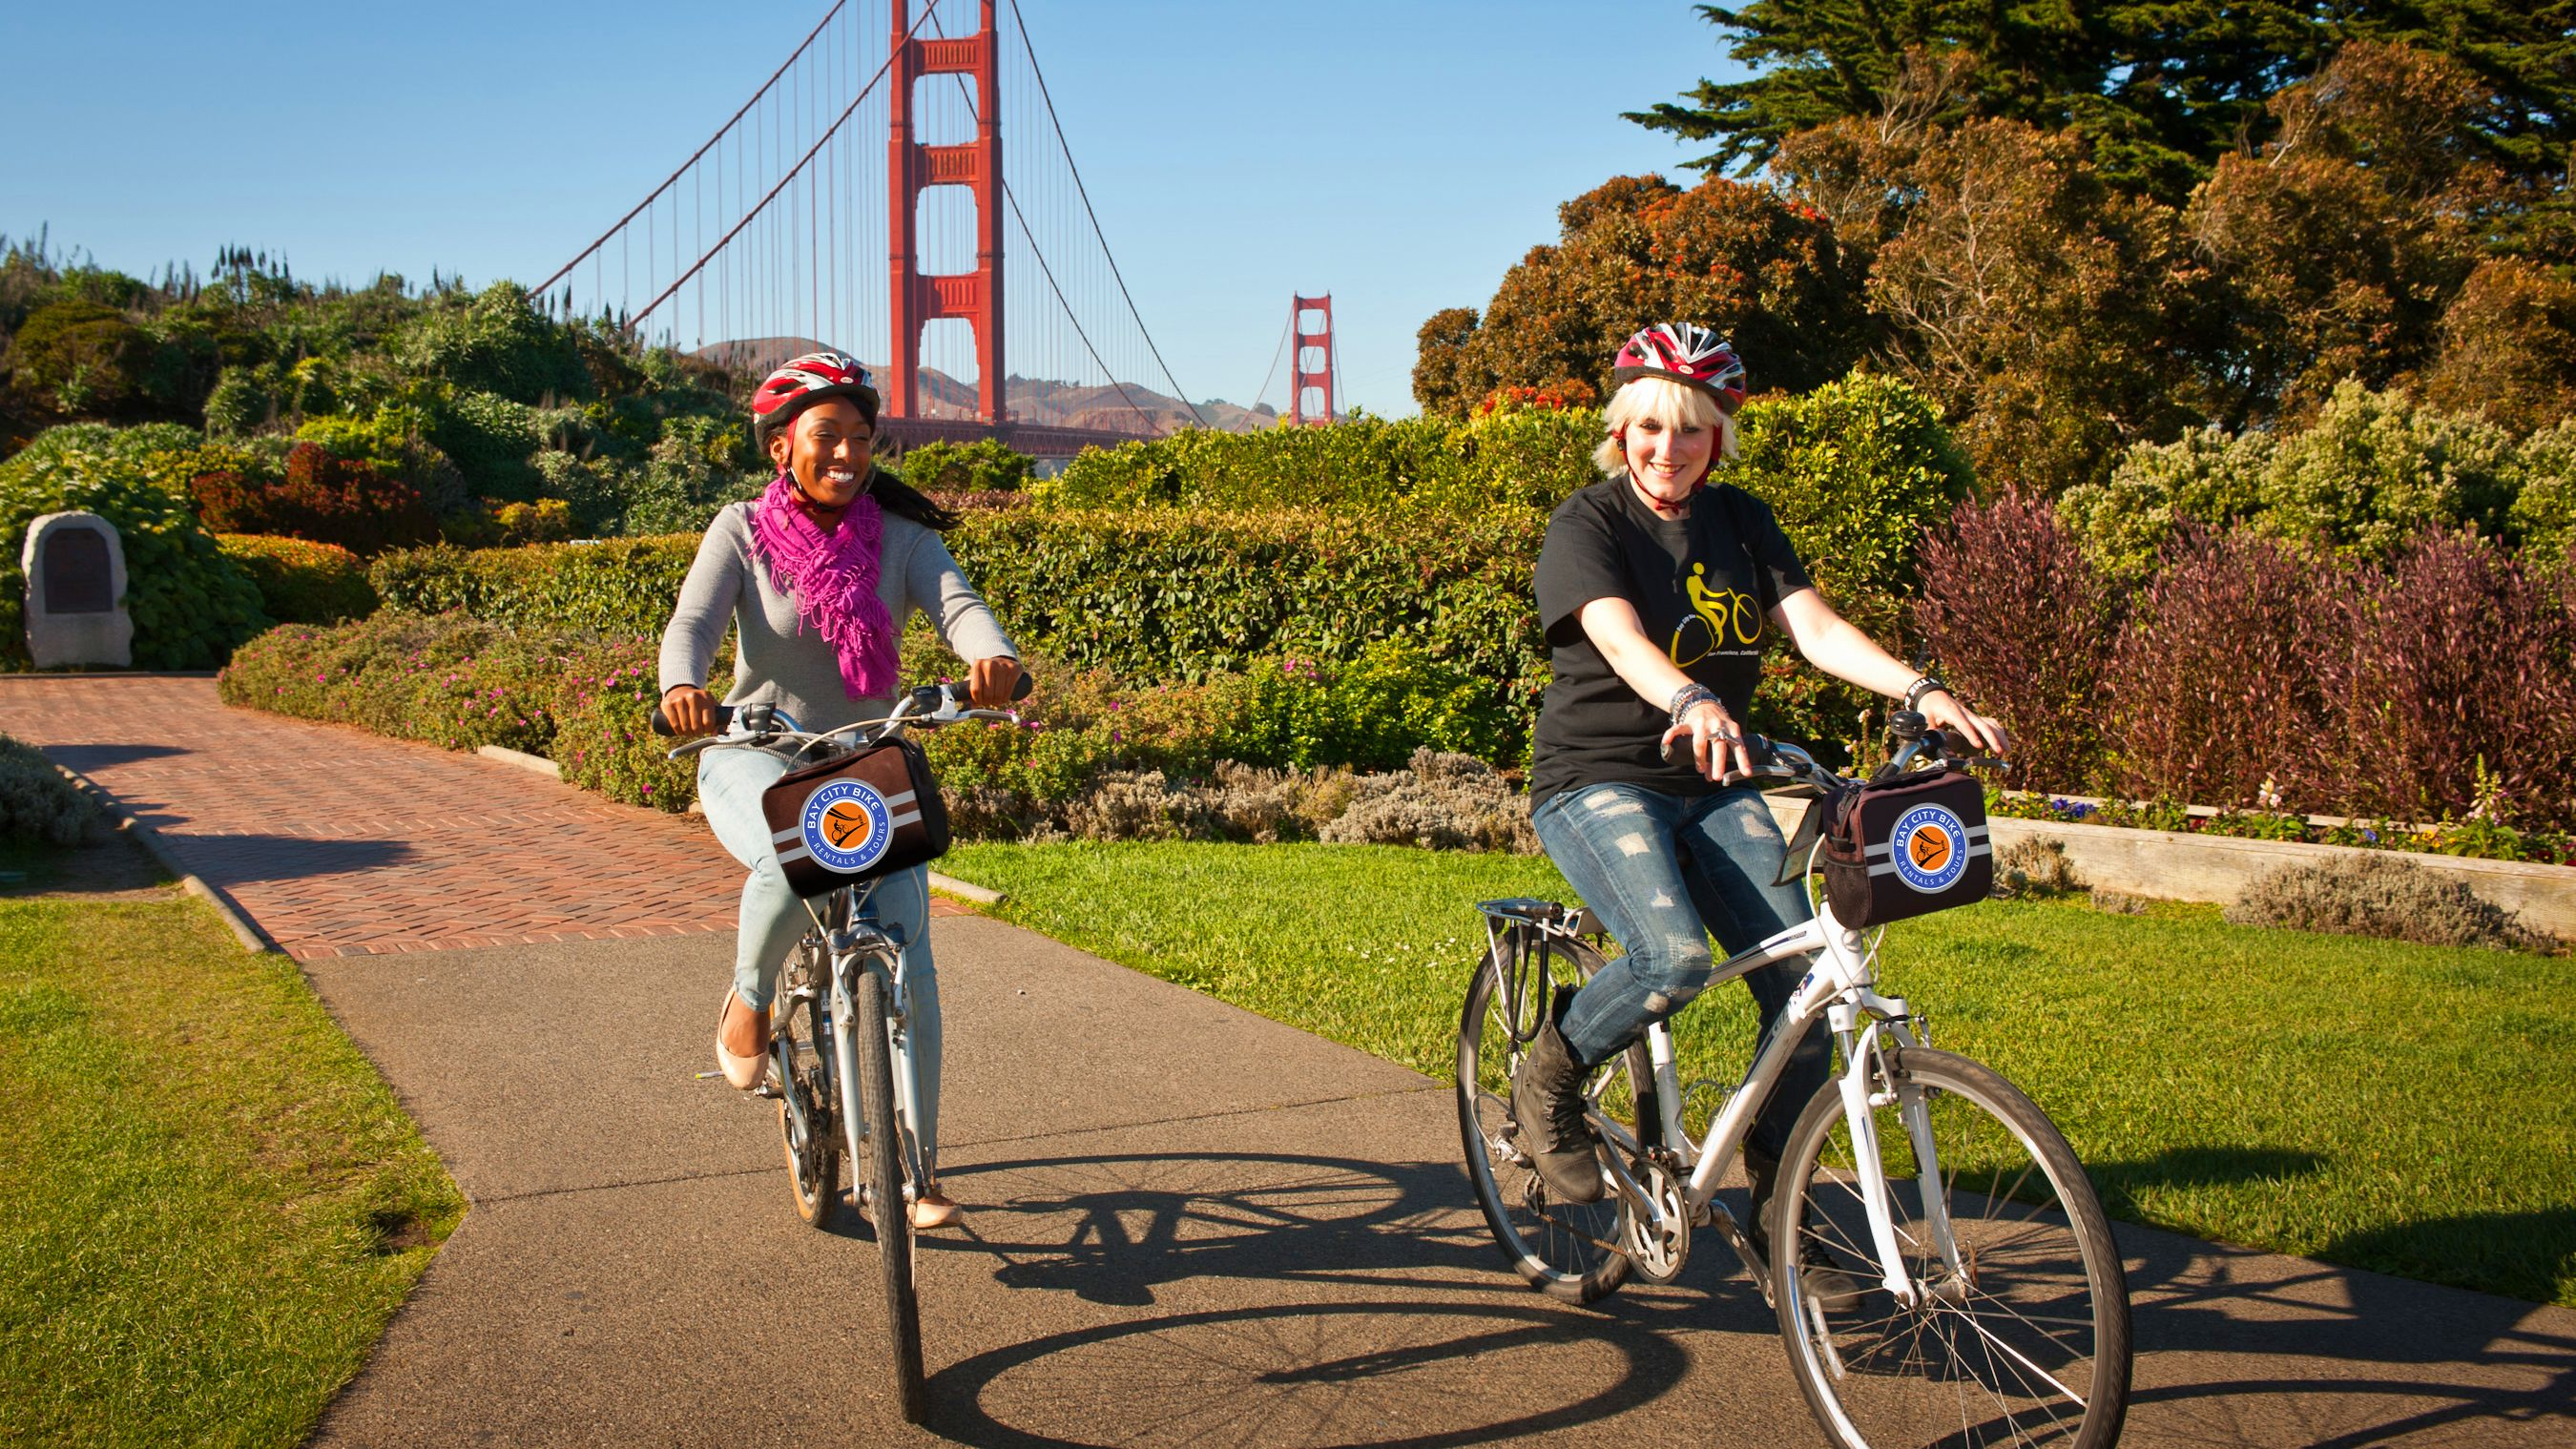 Two people riding bikes in San Francisco